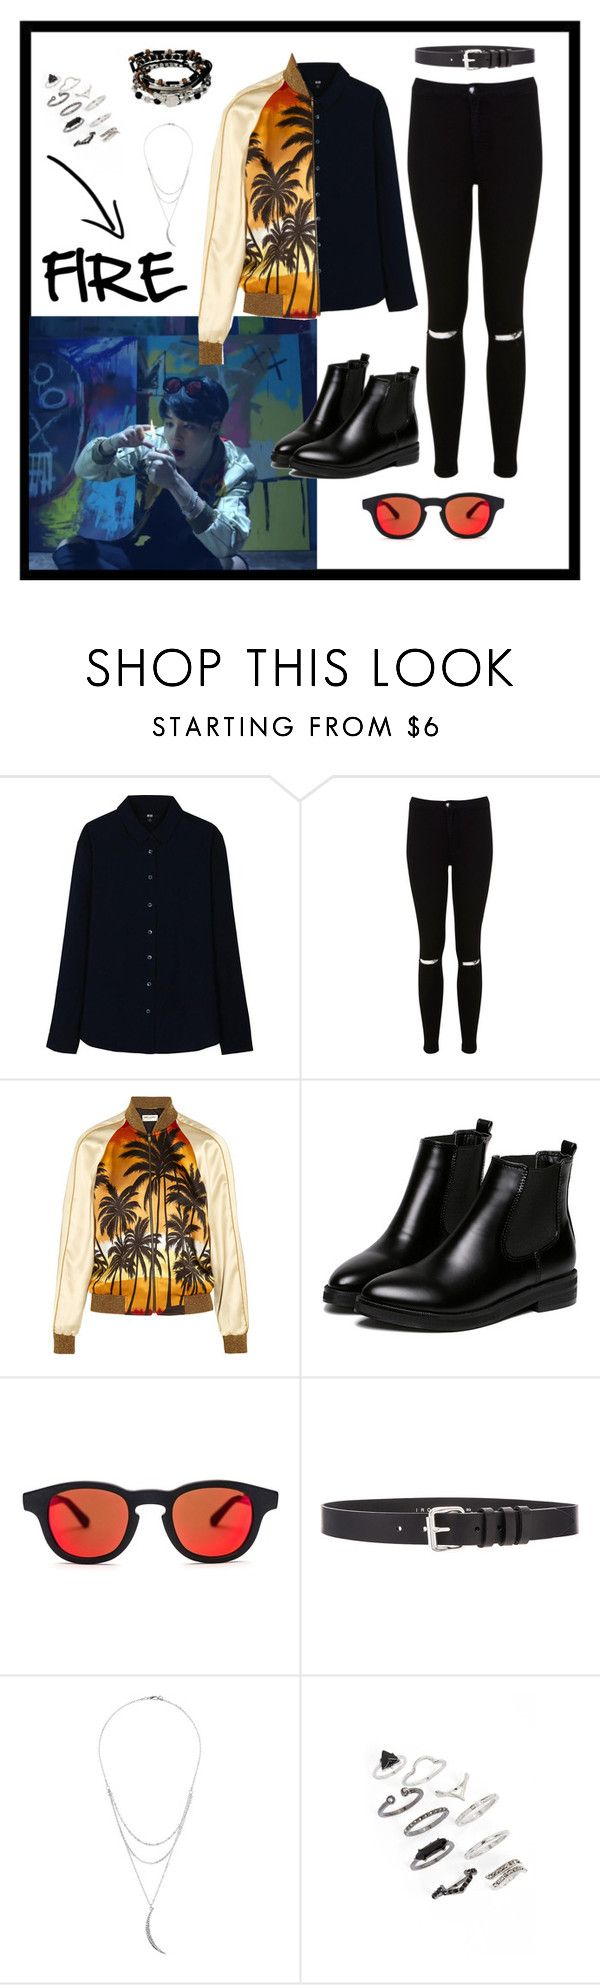 """Jimin Inspired Outfit (BTS-FIRE)"" by parkjiminie ❤ liked on Polyvore featuring Uniqlo, Miss Selfridge, Yves Saint Laurent, WithChic, Quattrocento, IRO, Charlotte Russe, Topshop and Kenneth Cole"